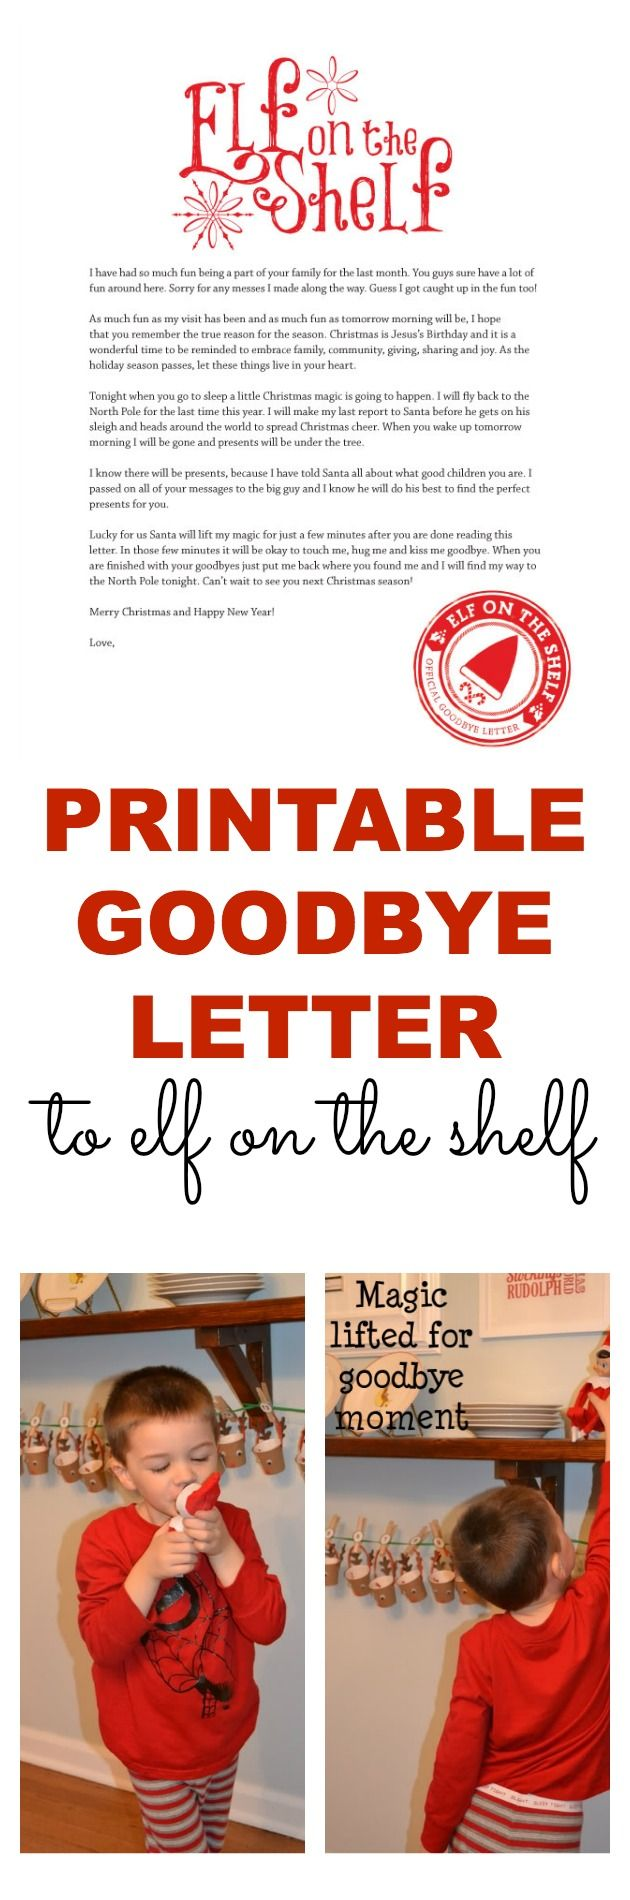 A printable goodbye letter for Elf on the Shelf. Elf on the shelf is so cute.